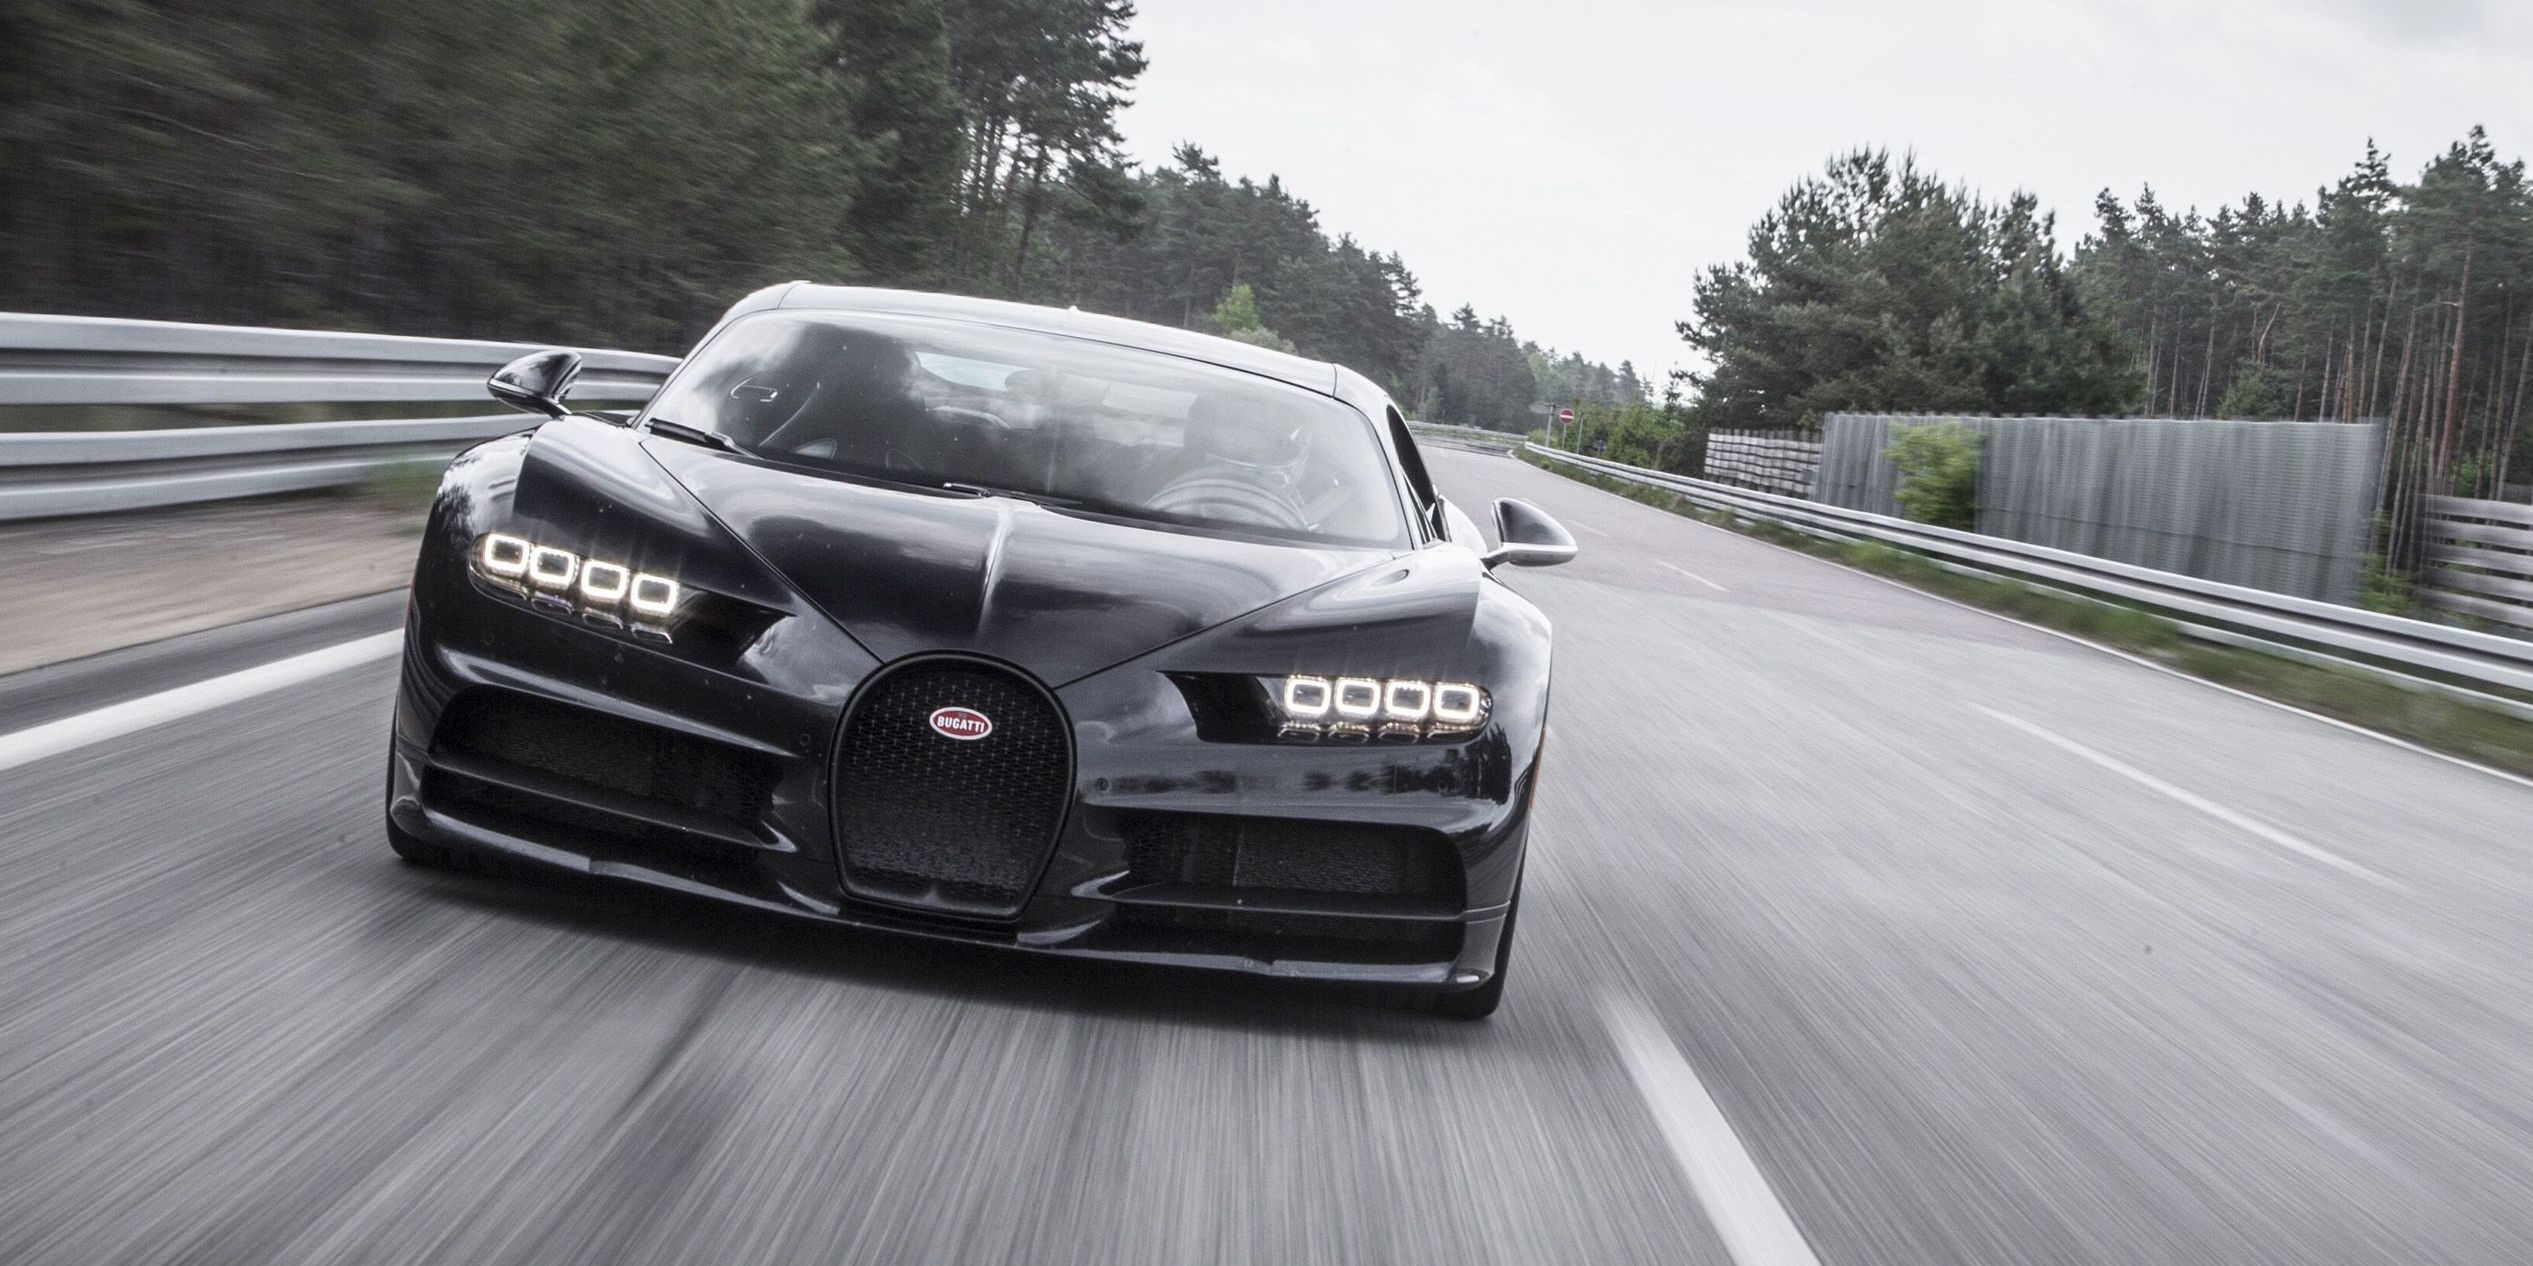 You Can Only Reach the Bugatti Chiron's Top Speed If the Car Allows It